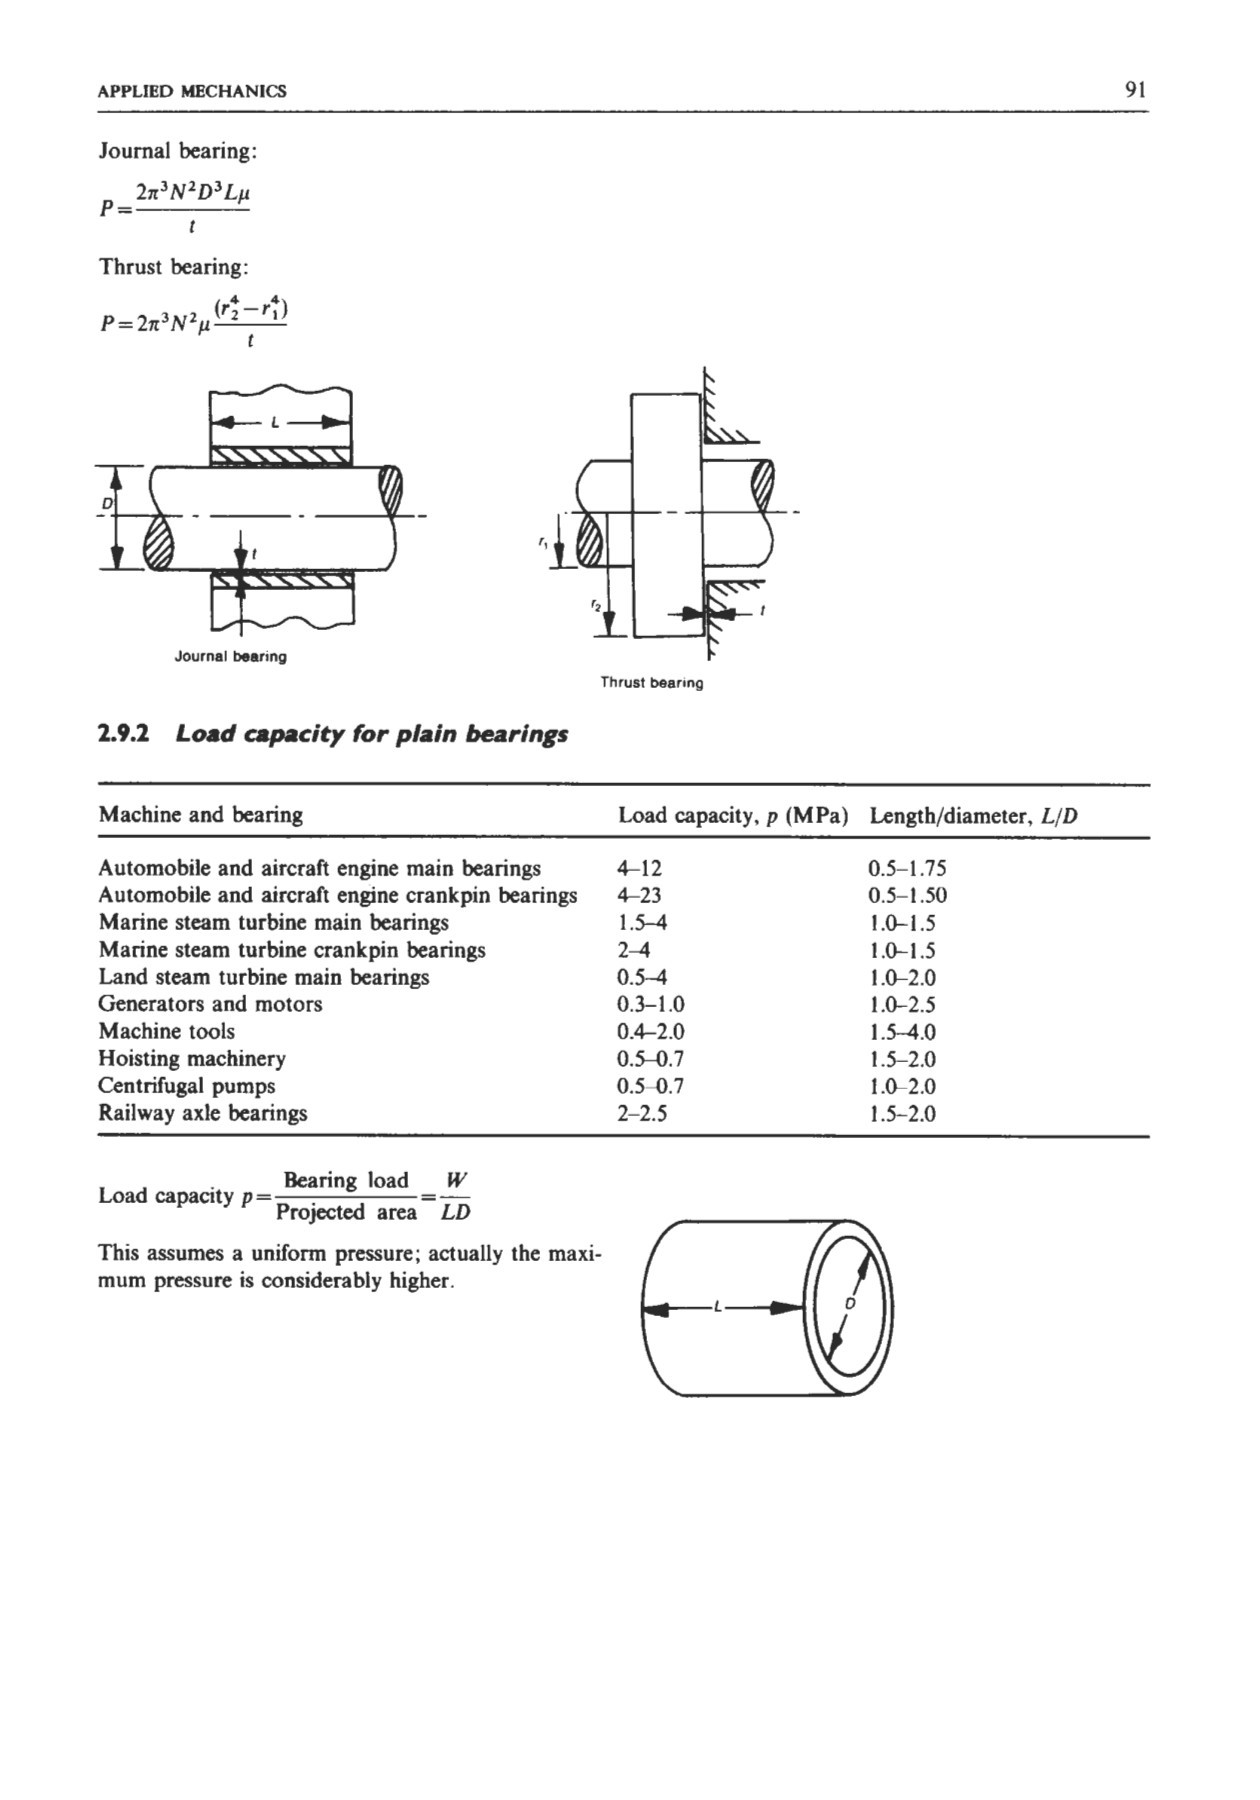 hight resolution of mechanical engineer s data handbook pages 101 150 text version fliphtml5